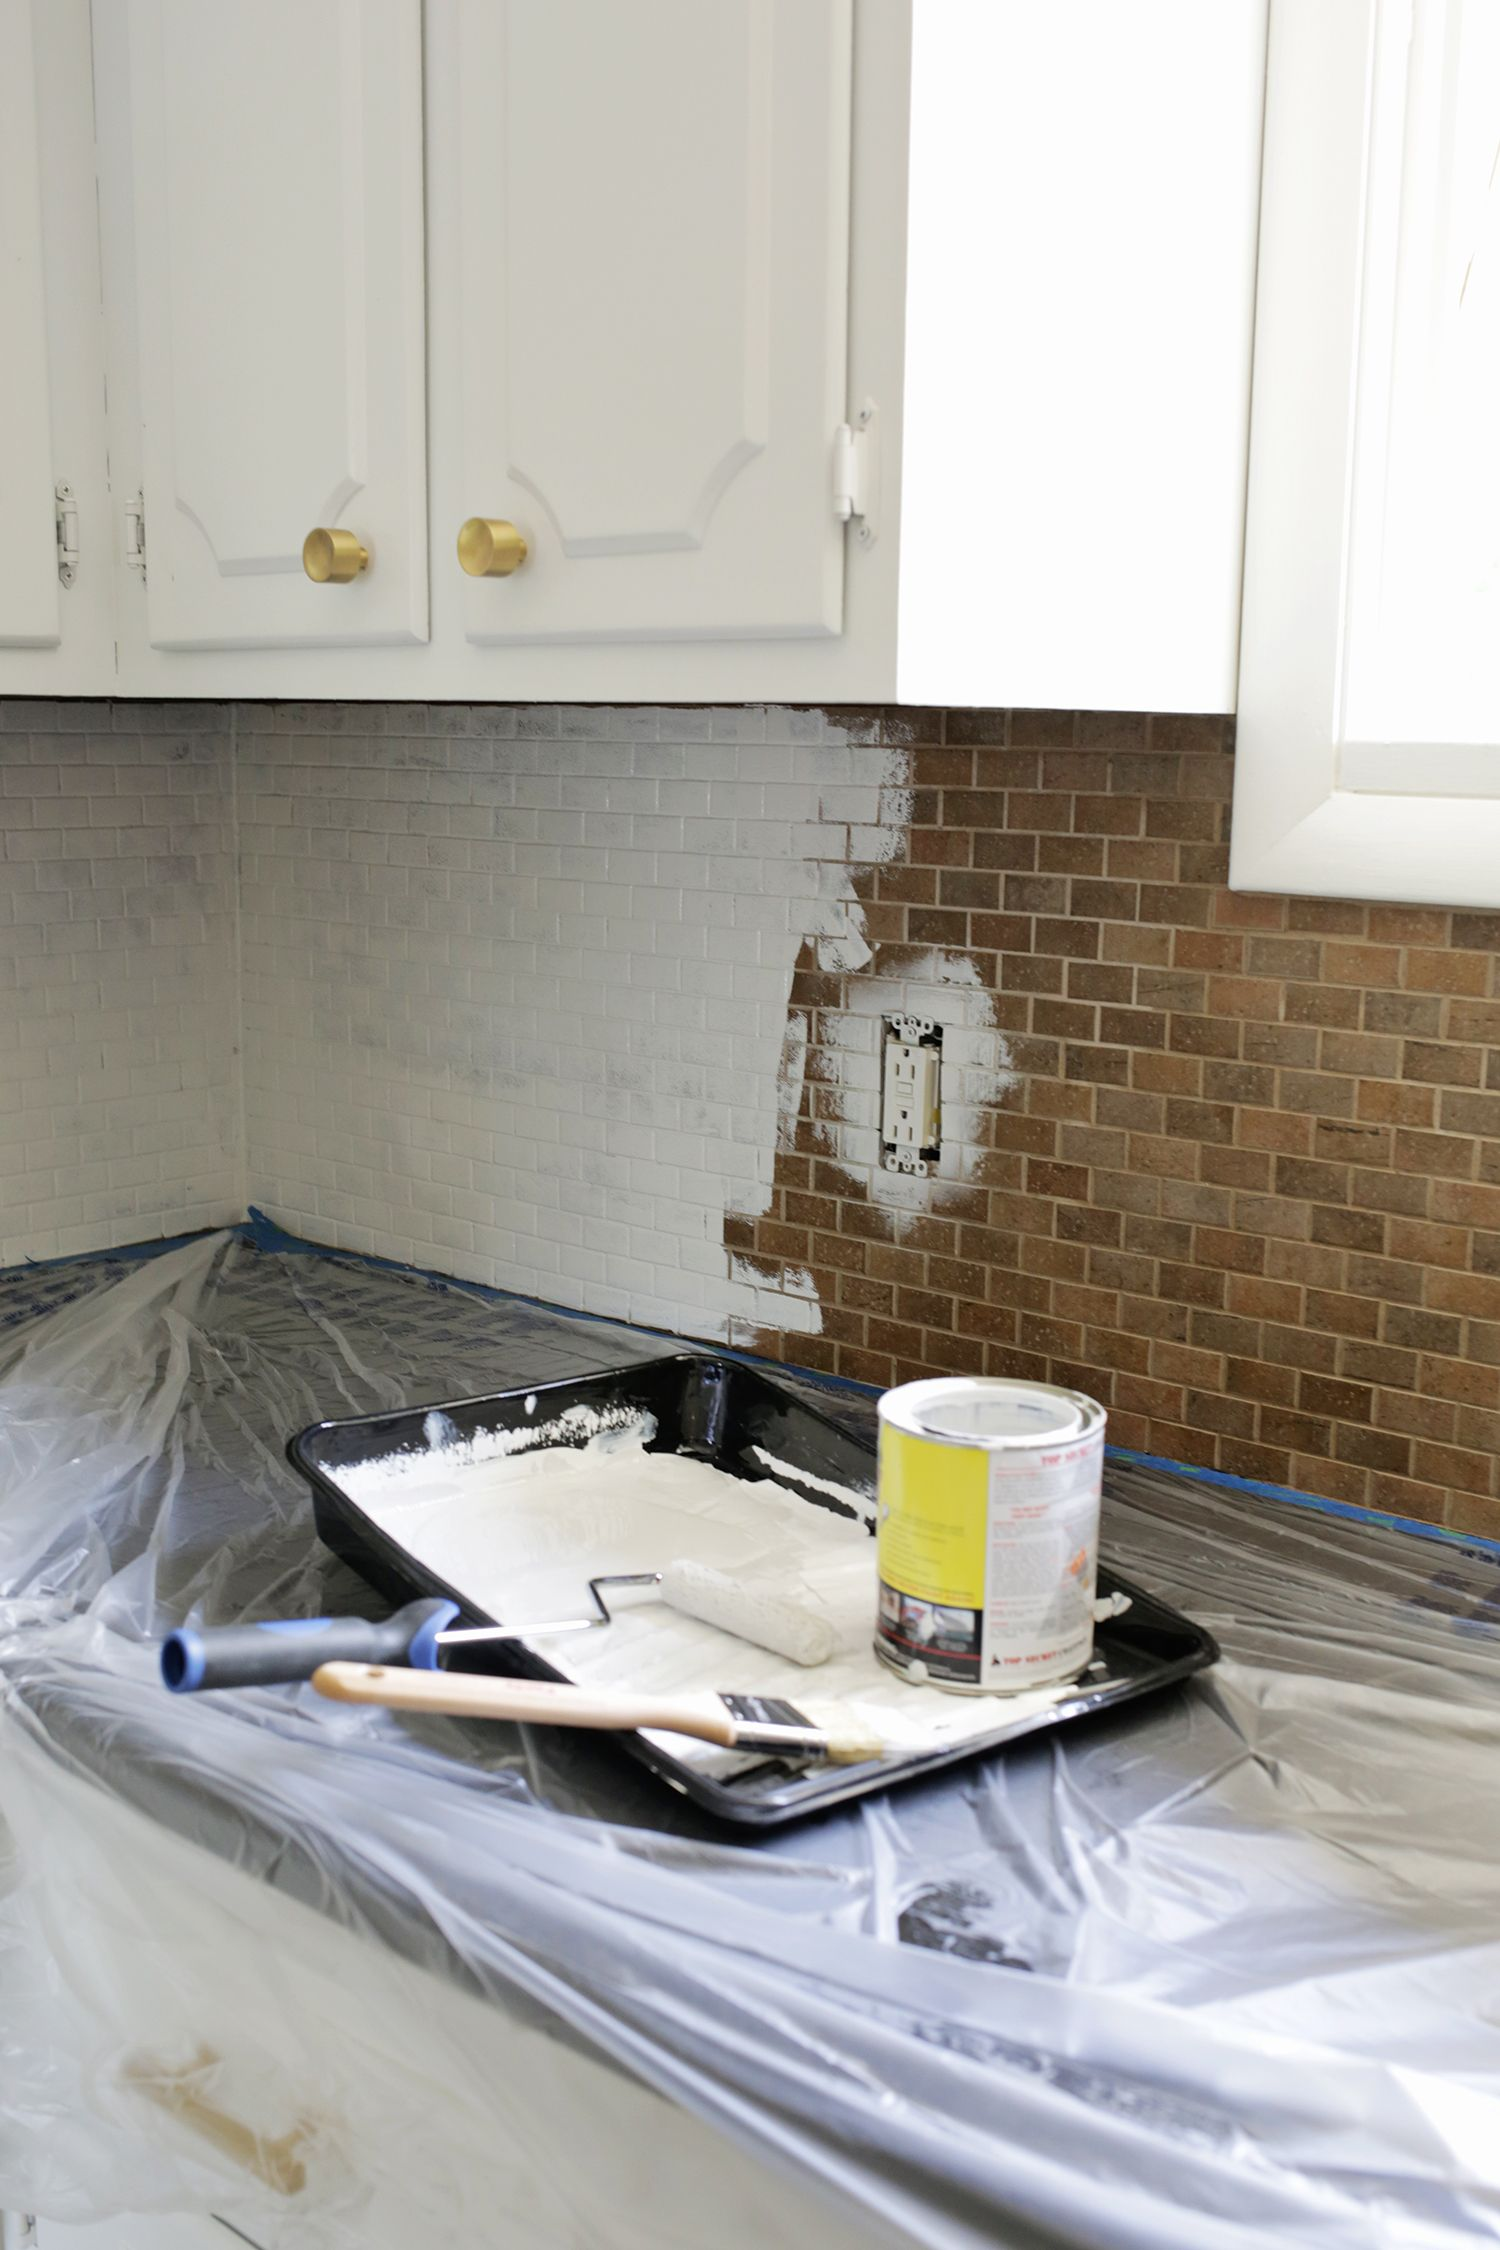 How To Paint A Tile Backsplash Painting Kitchen Tiles Kitchen